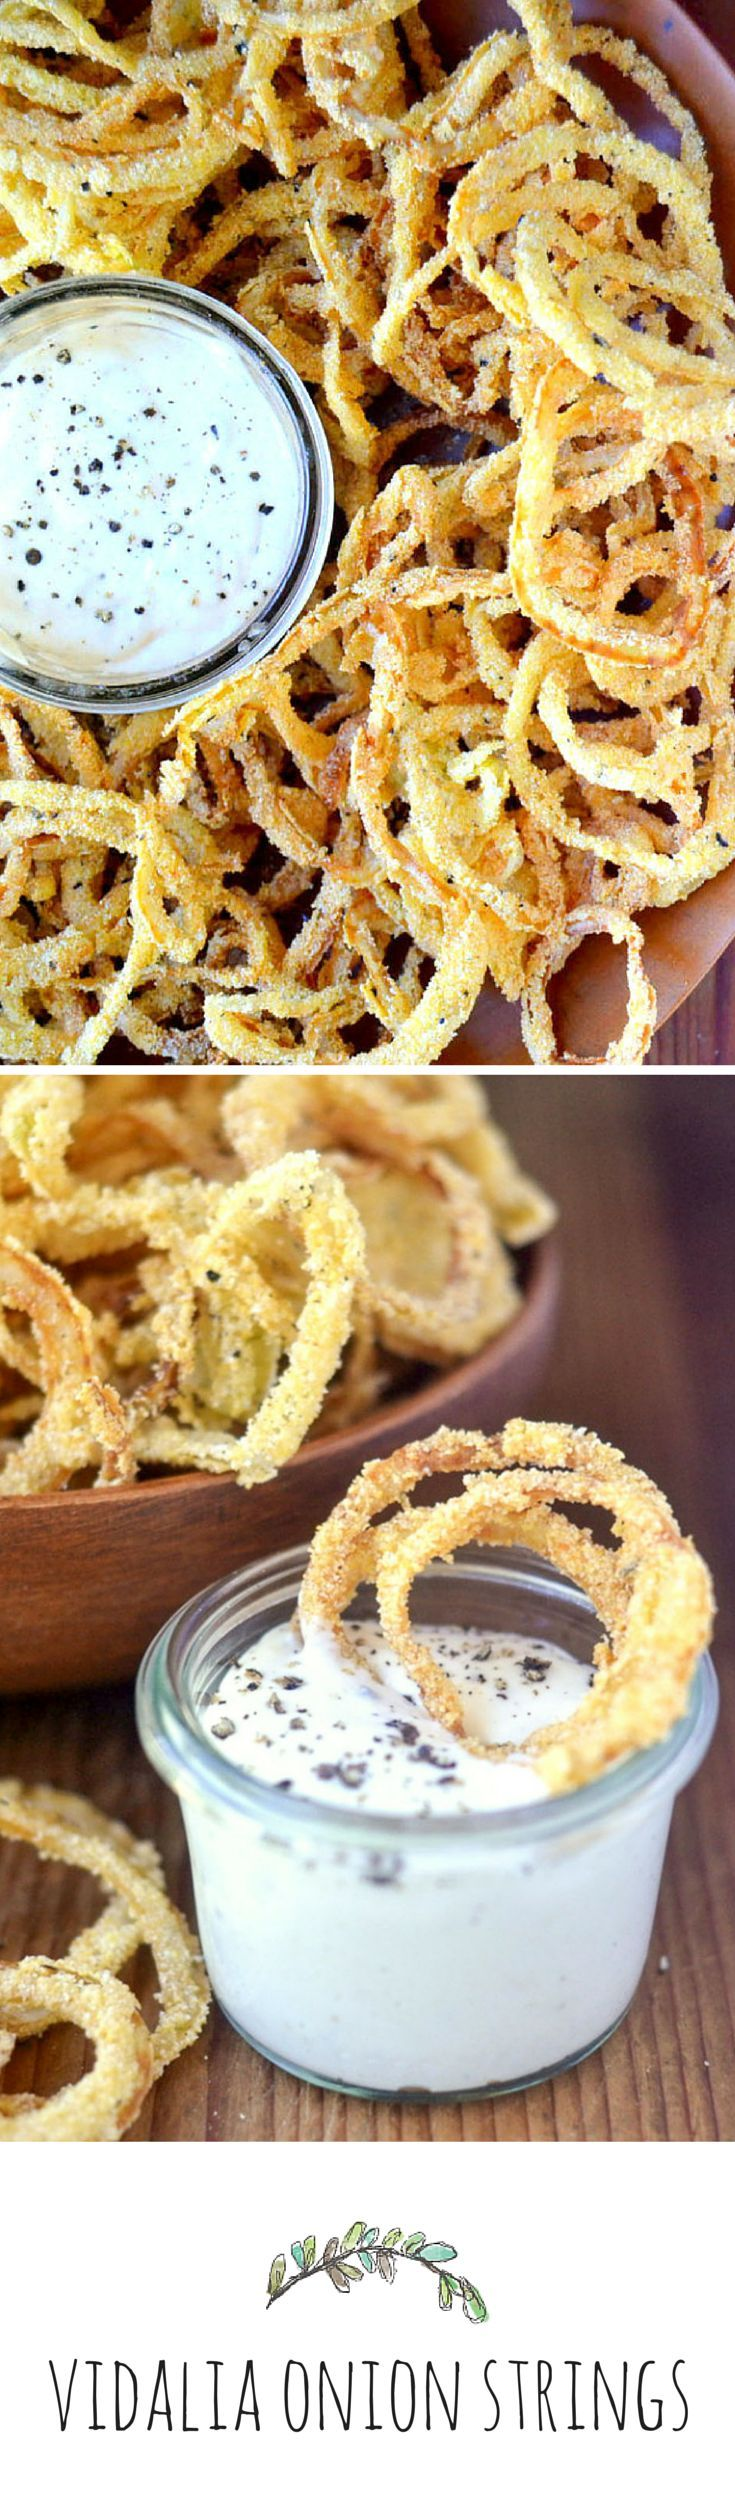 Vidalia Onion Strings with Horseradish Aioli. Don't do game night without these! Airfry at 200 Celsius until crispy.